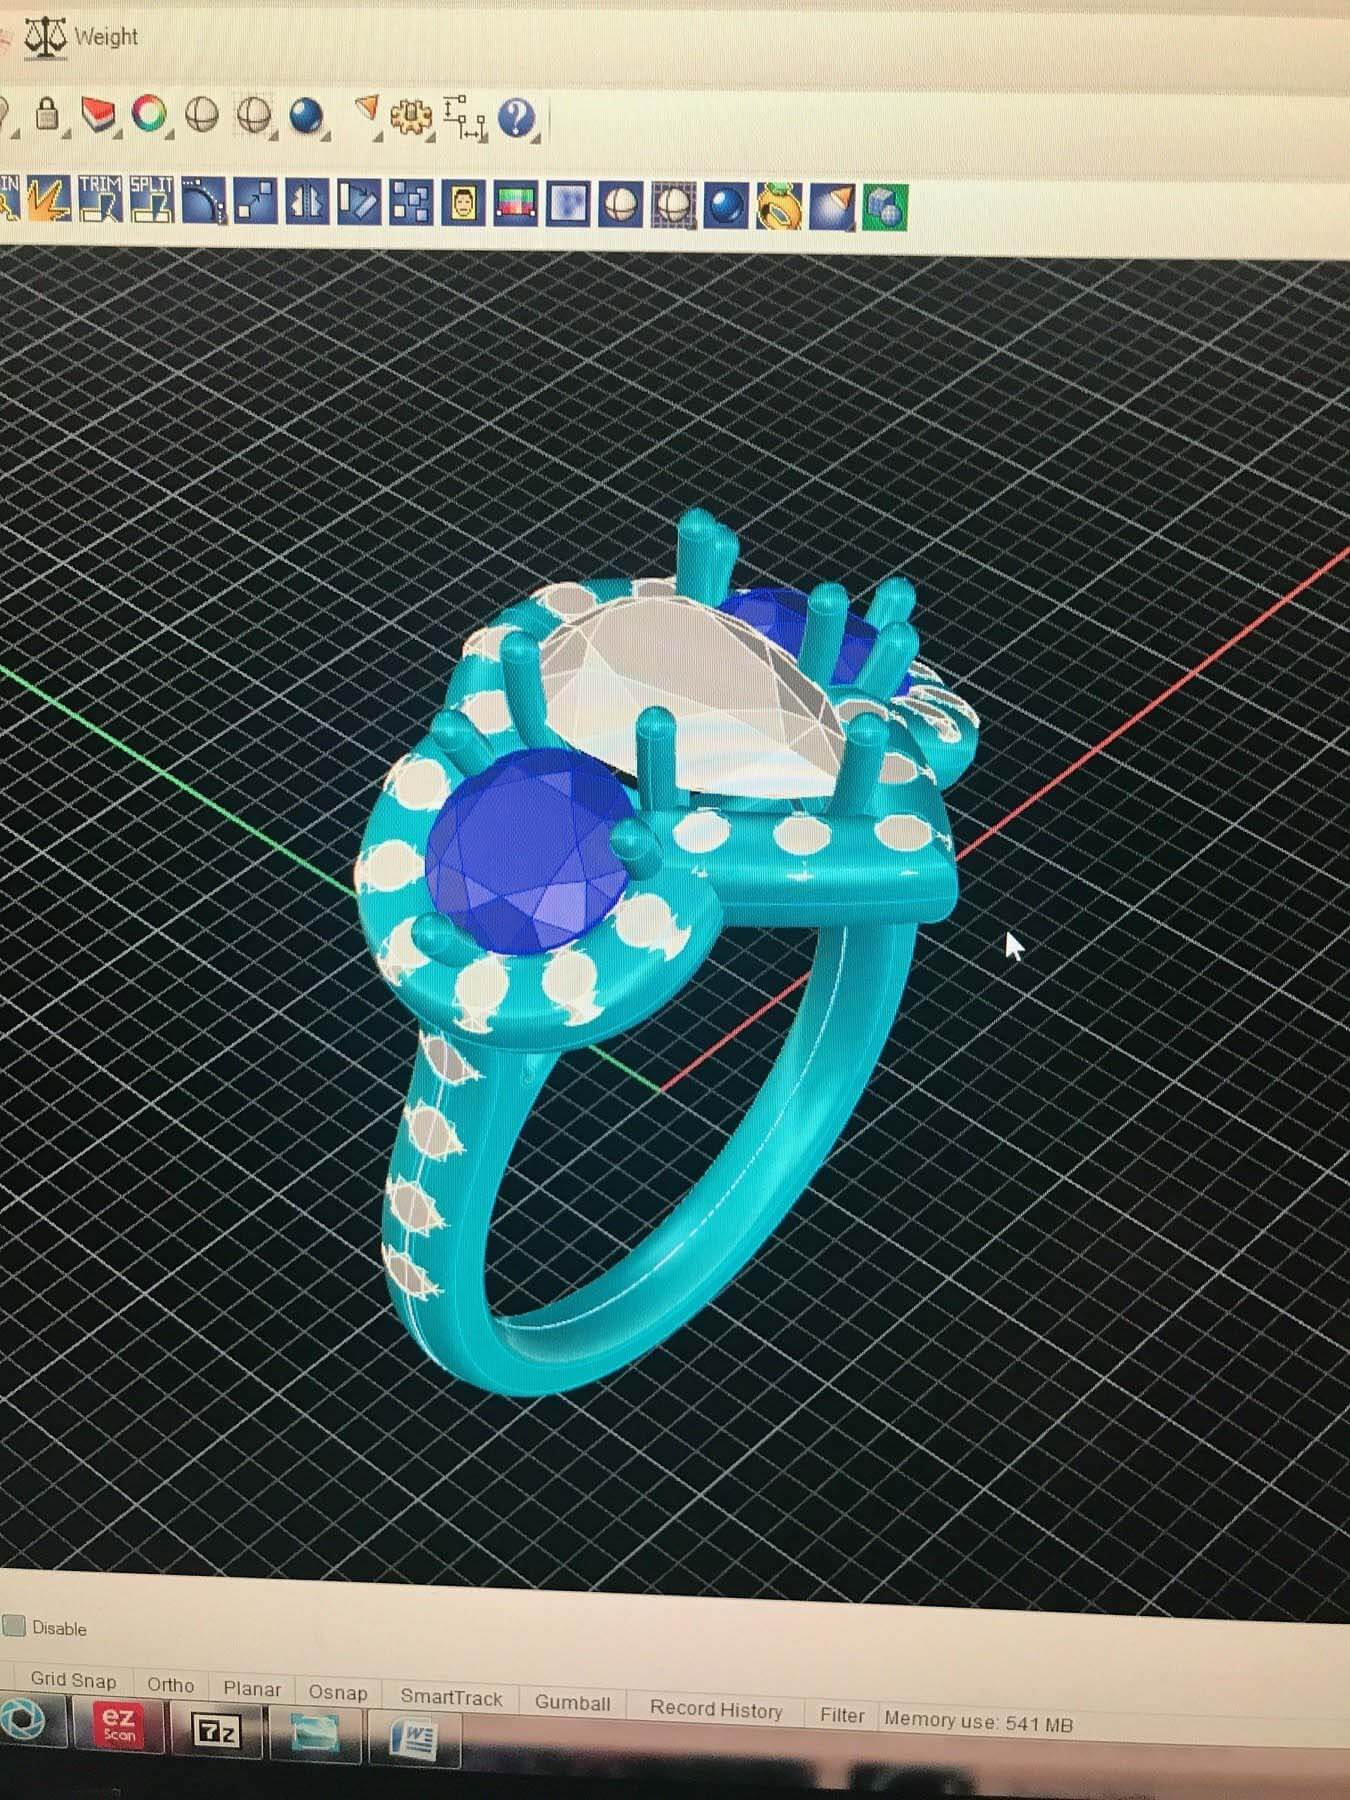 Computer image of ring